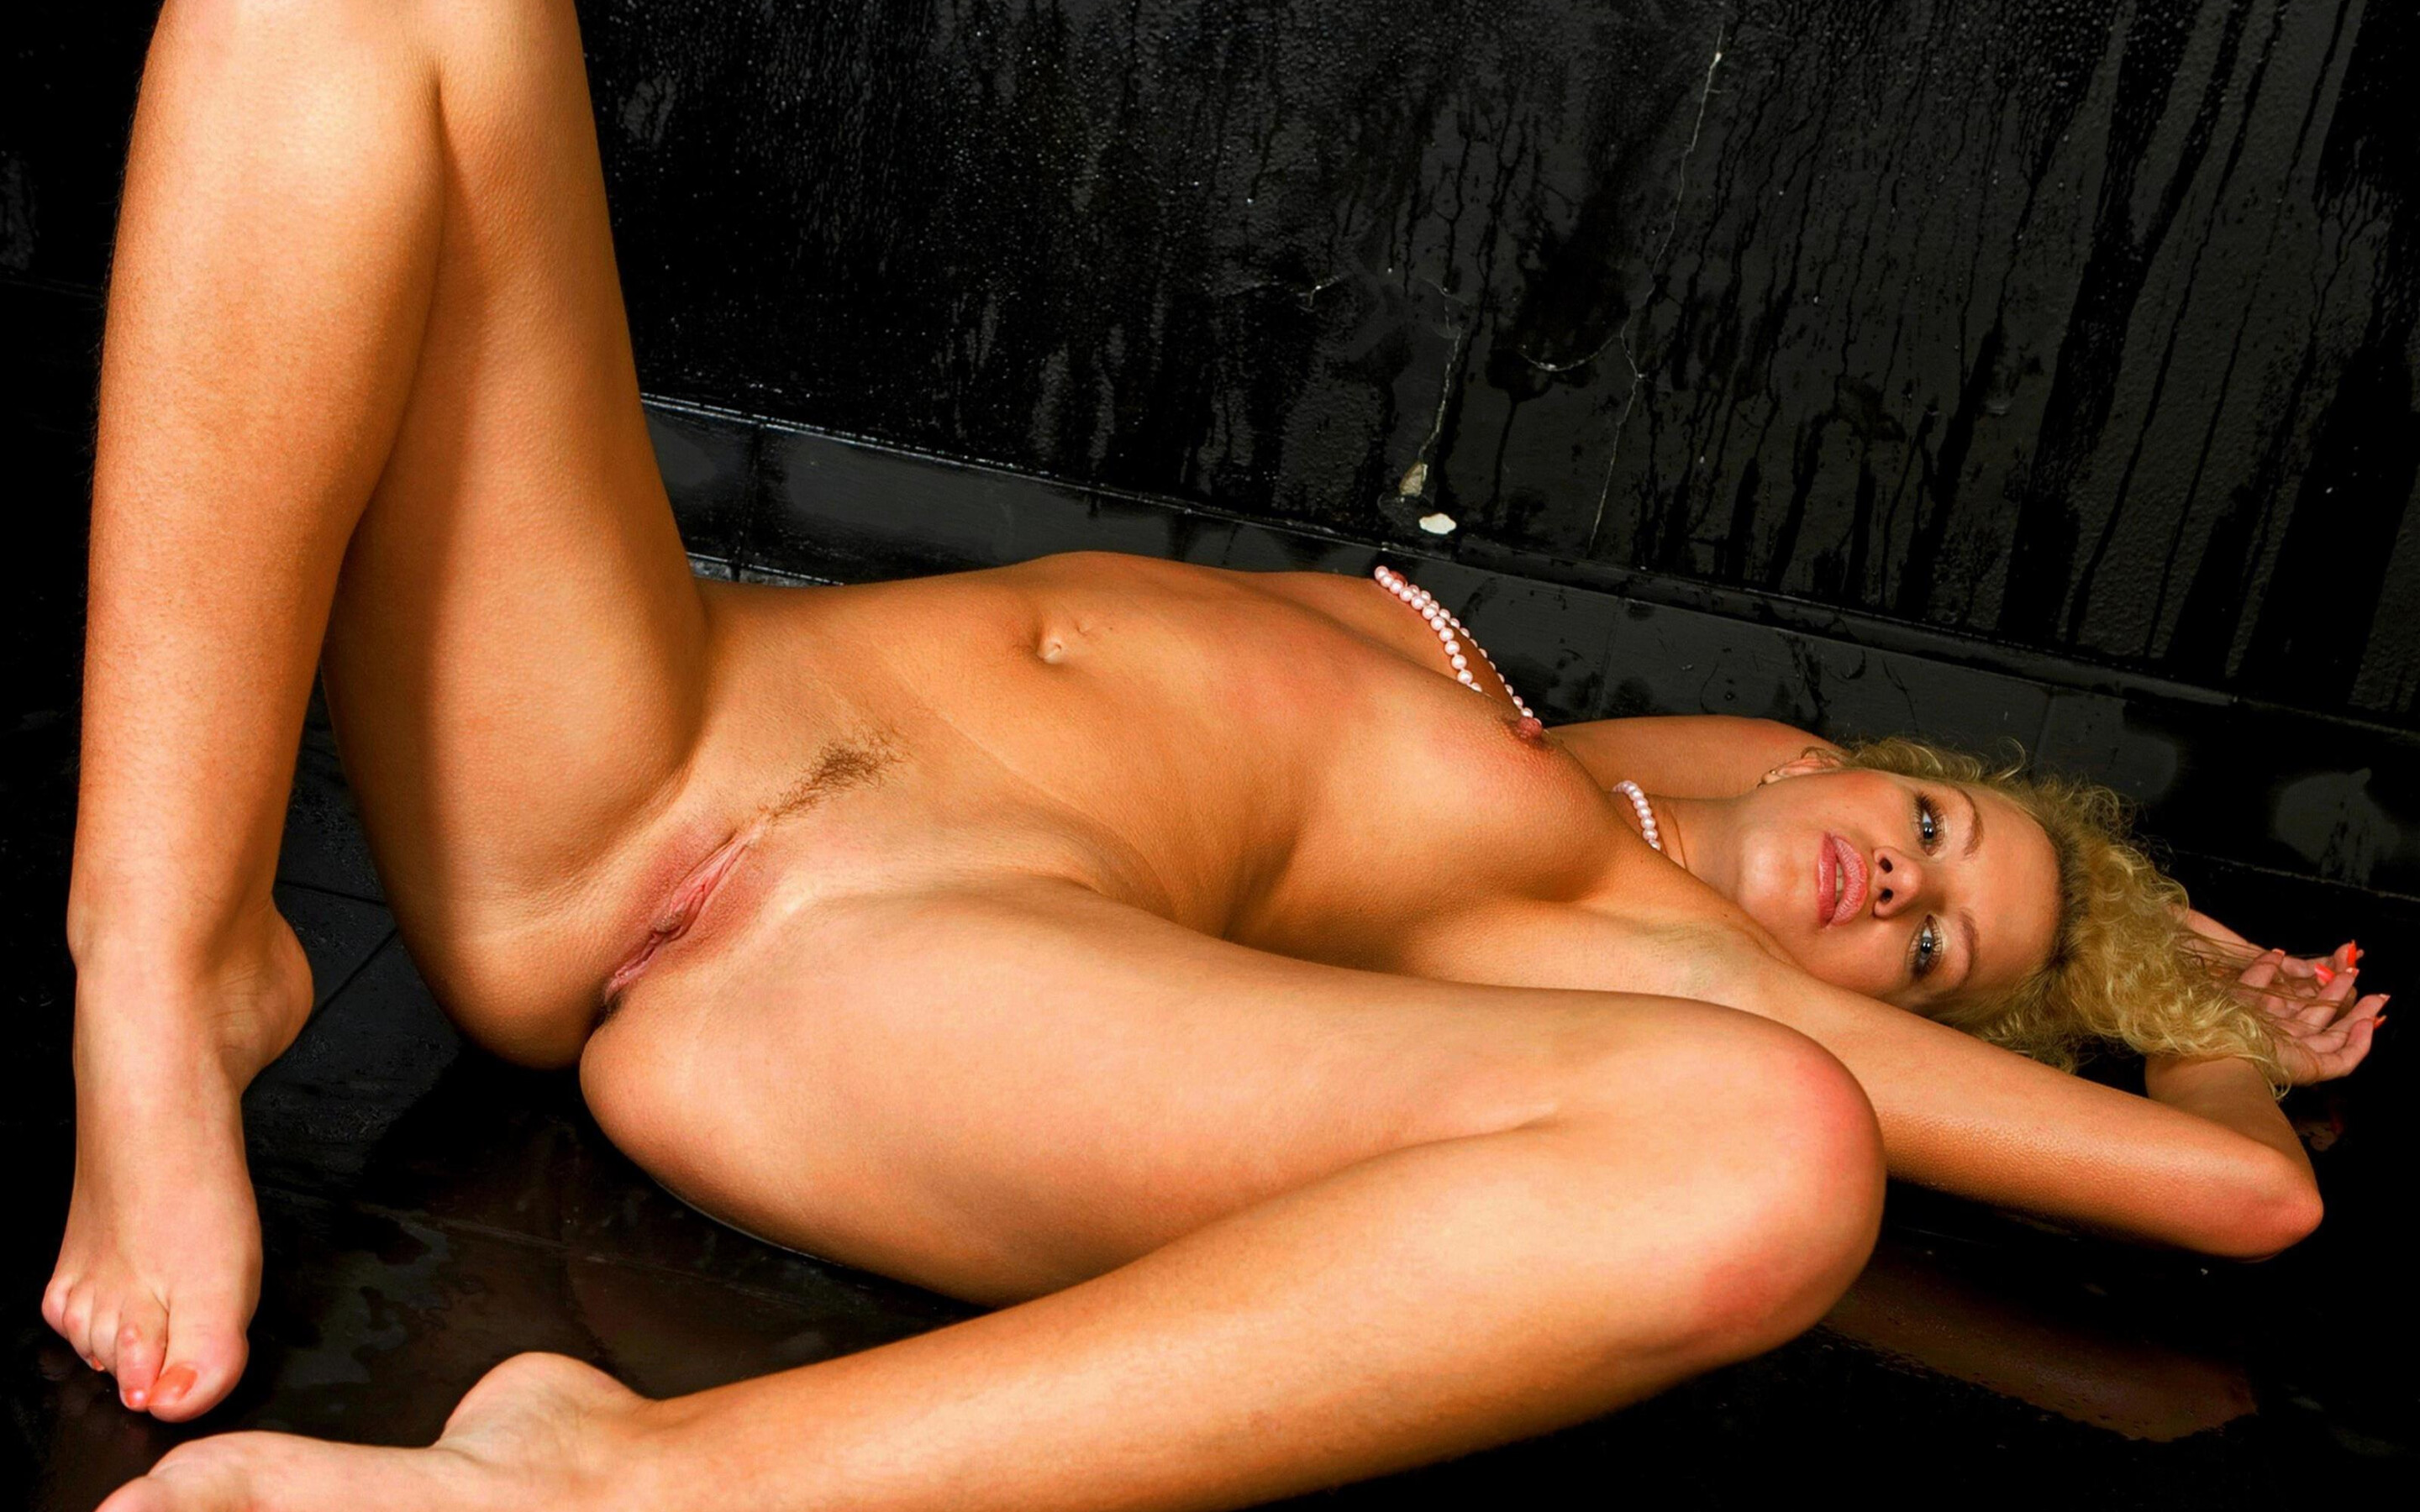 Nude Open Legs Half Shaved Pussy Wet Blonde Girl Wallpaper #1987